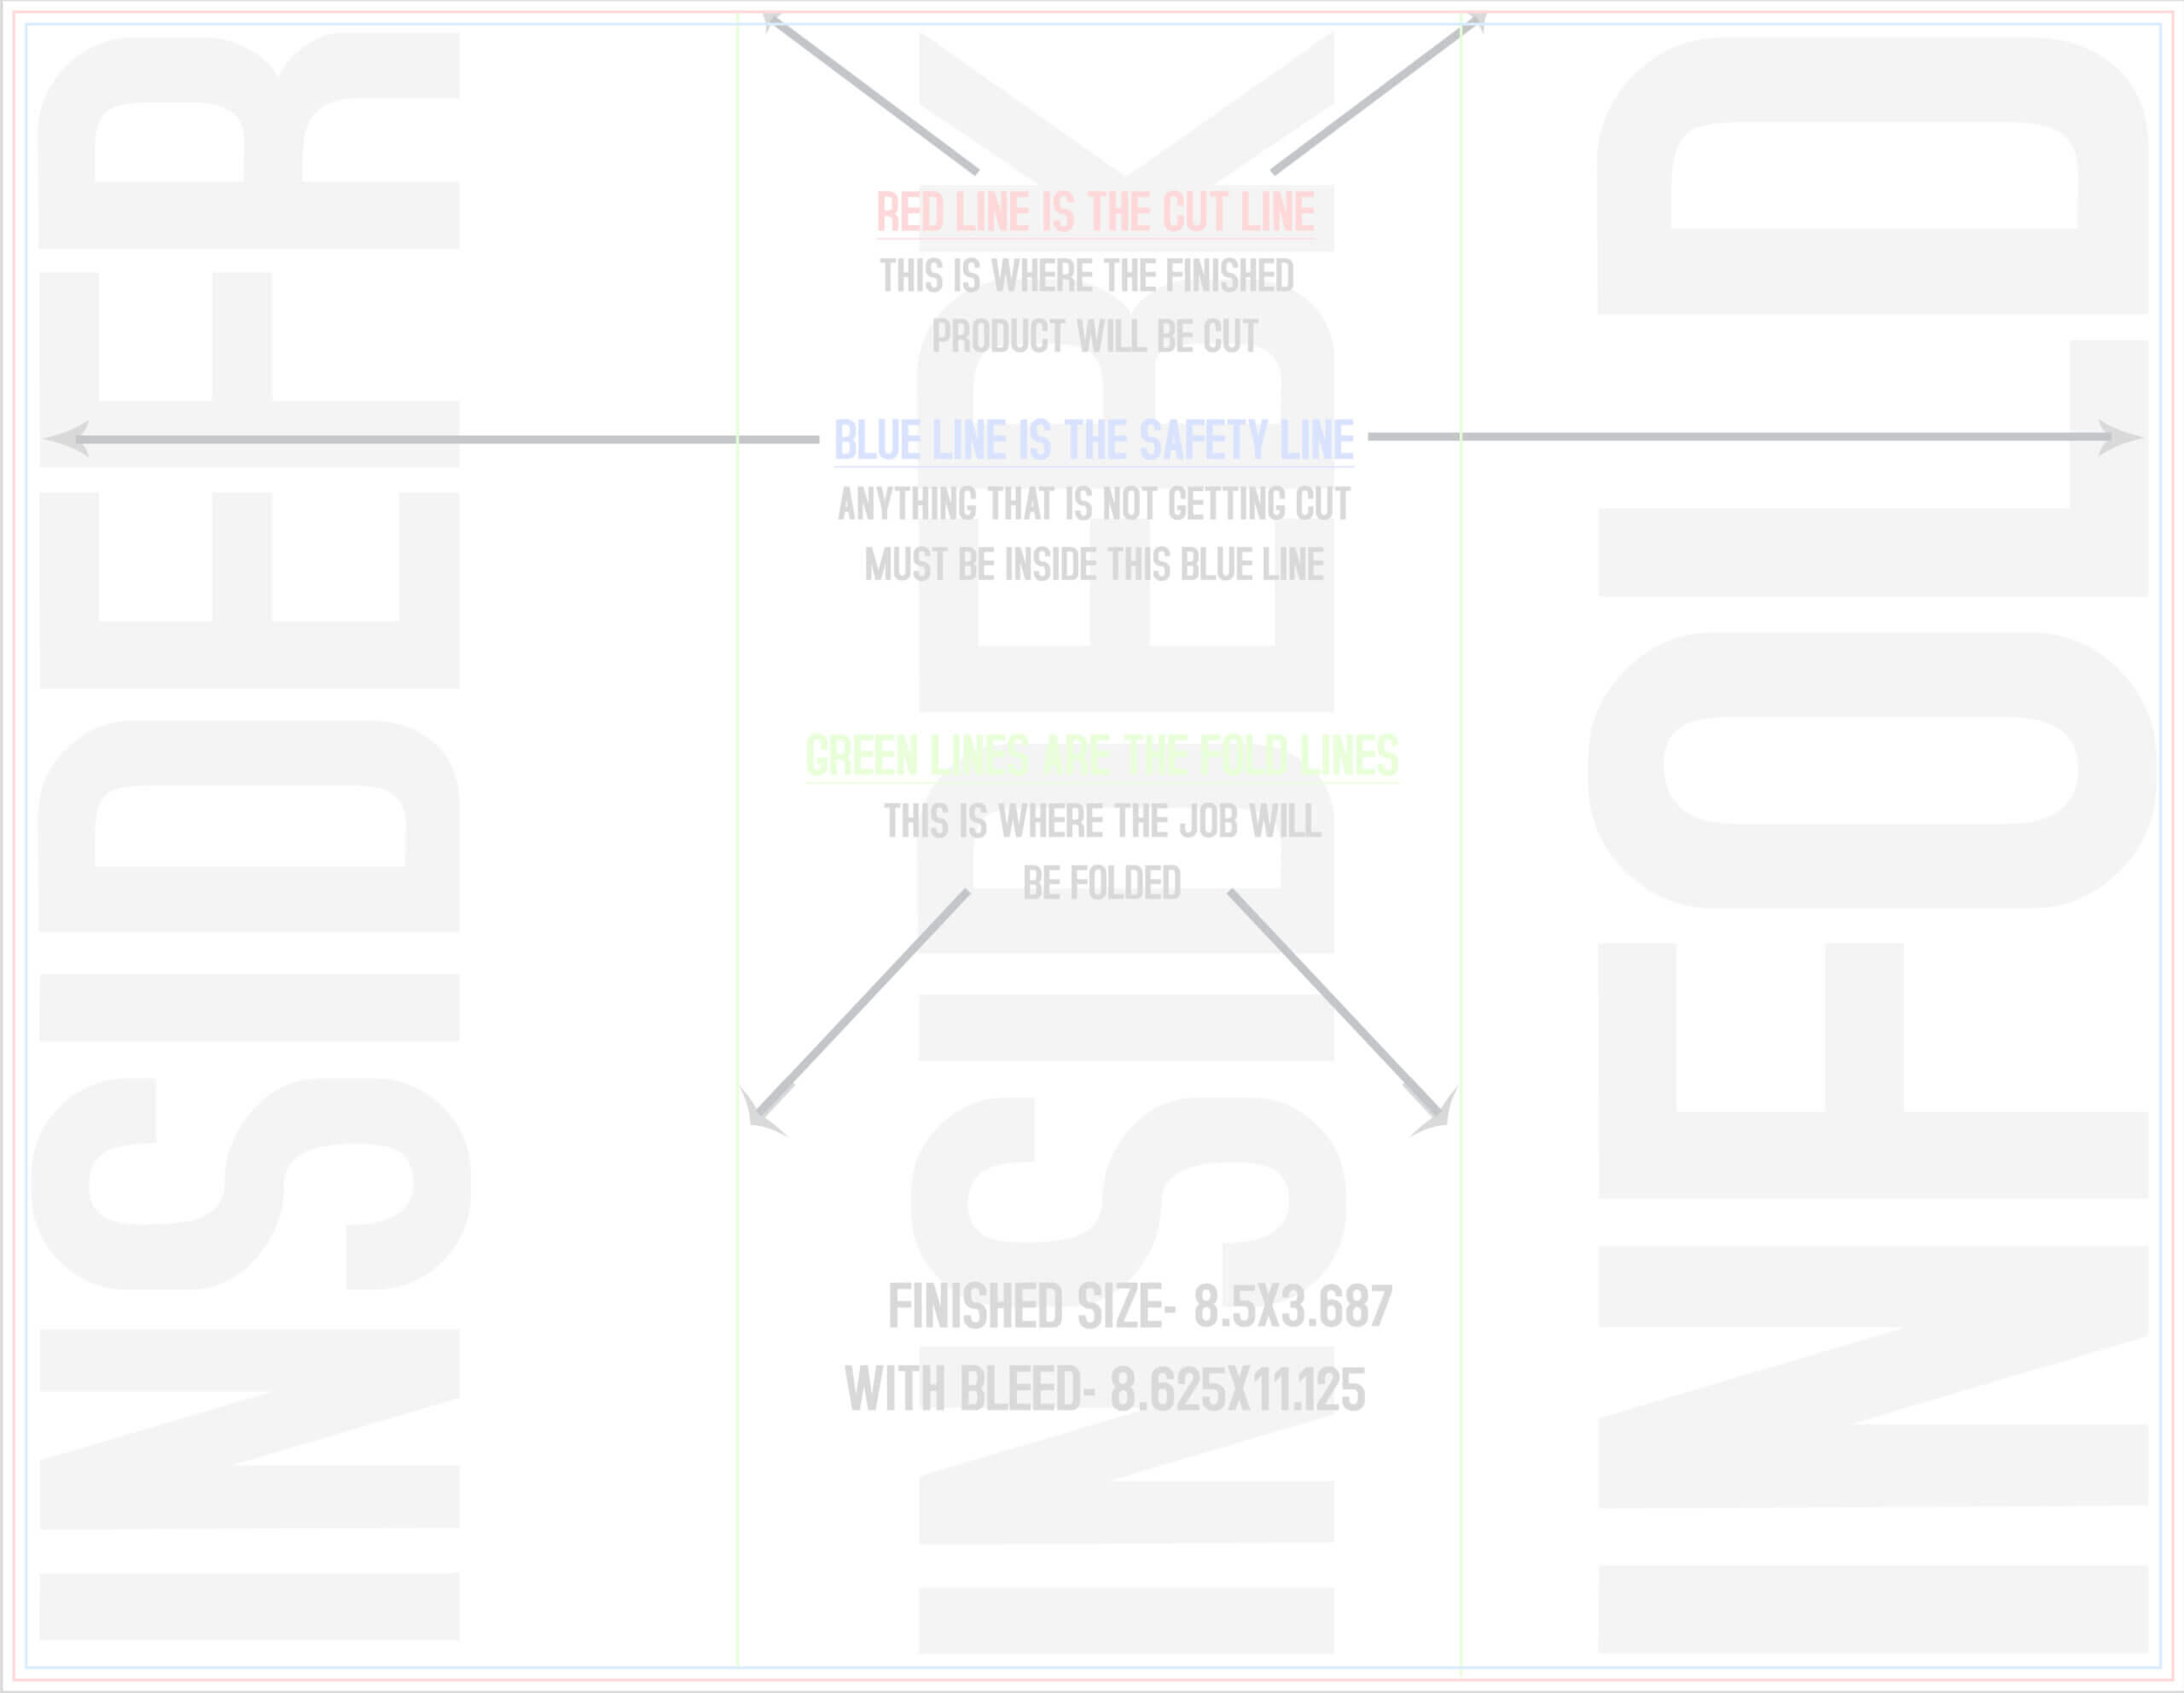 Print Your Own Business Cards Template ] - 19 Avery Business Inside 8 5X 11 Business Card Template